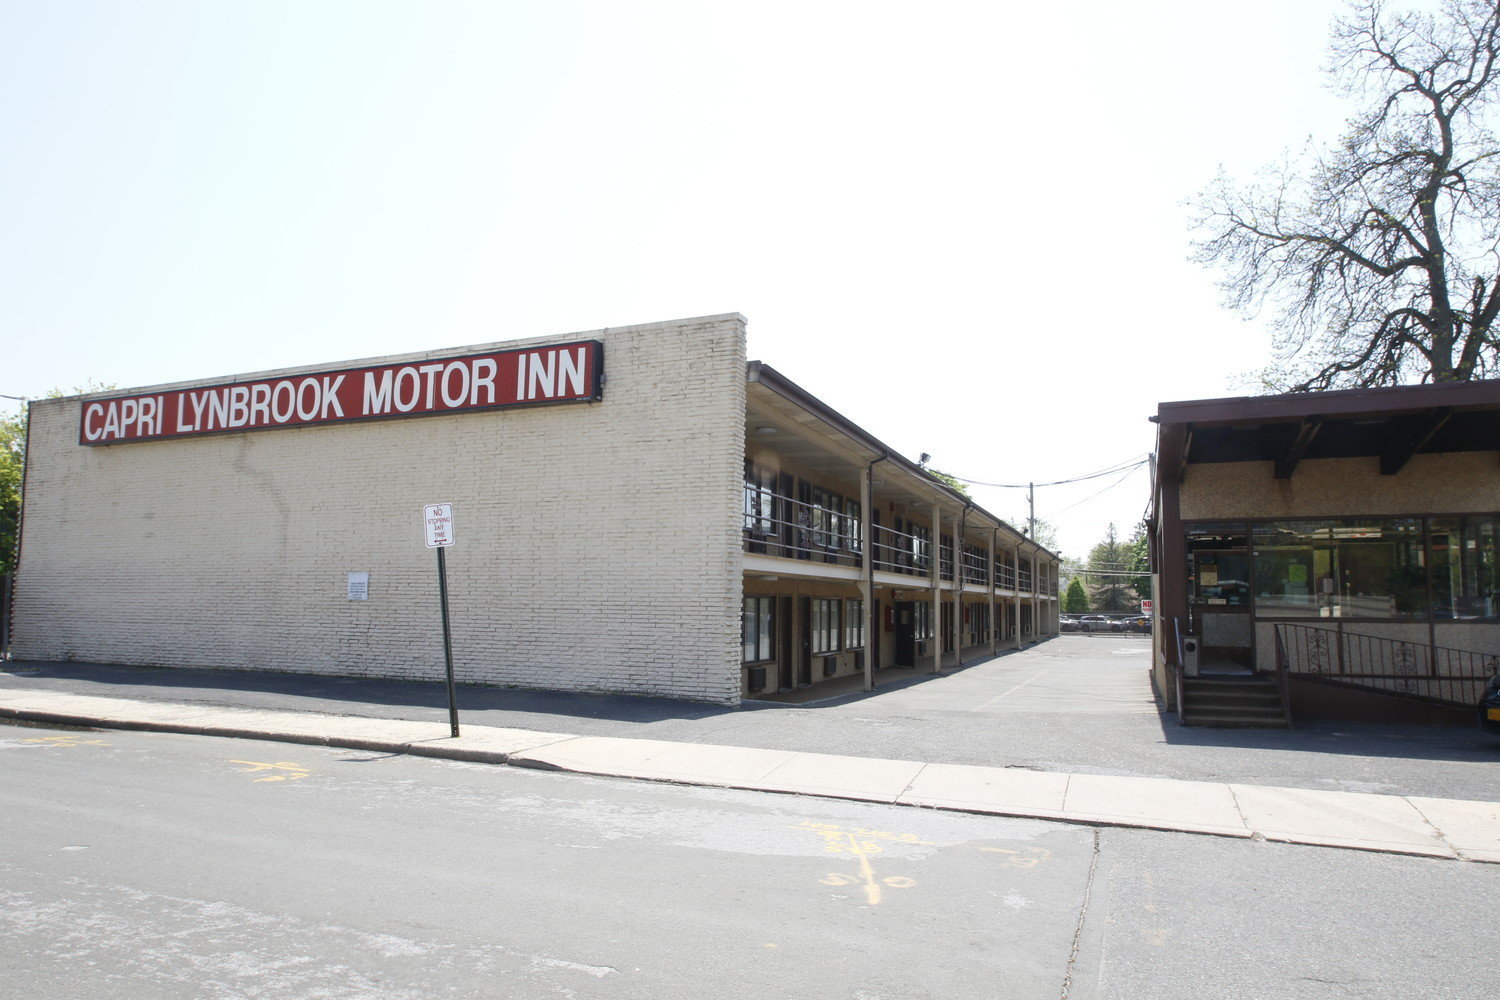 Though many residents were happy to see the sale of the Capri Lynbrook Motor Inn, some offered mixed reactions after developer Anthony Bartone announced plans to purchase the site, pending the board's approval of his project.